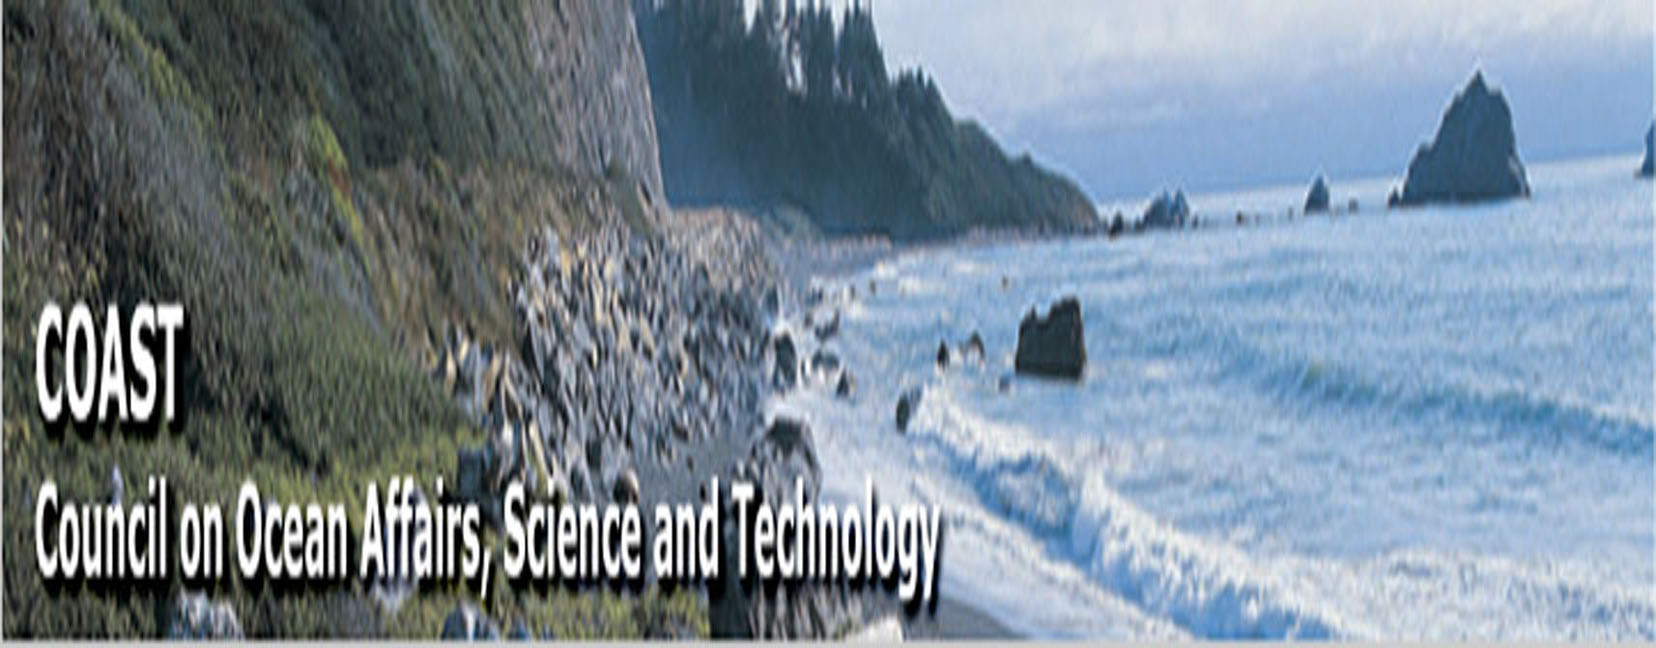 COAST - Council on ocean affairs, science and technology